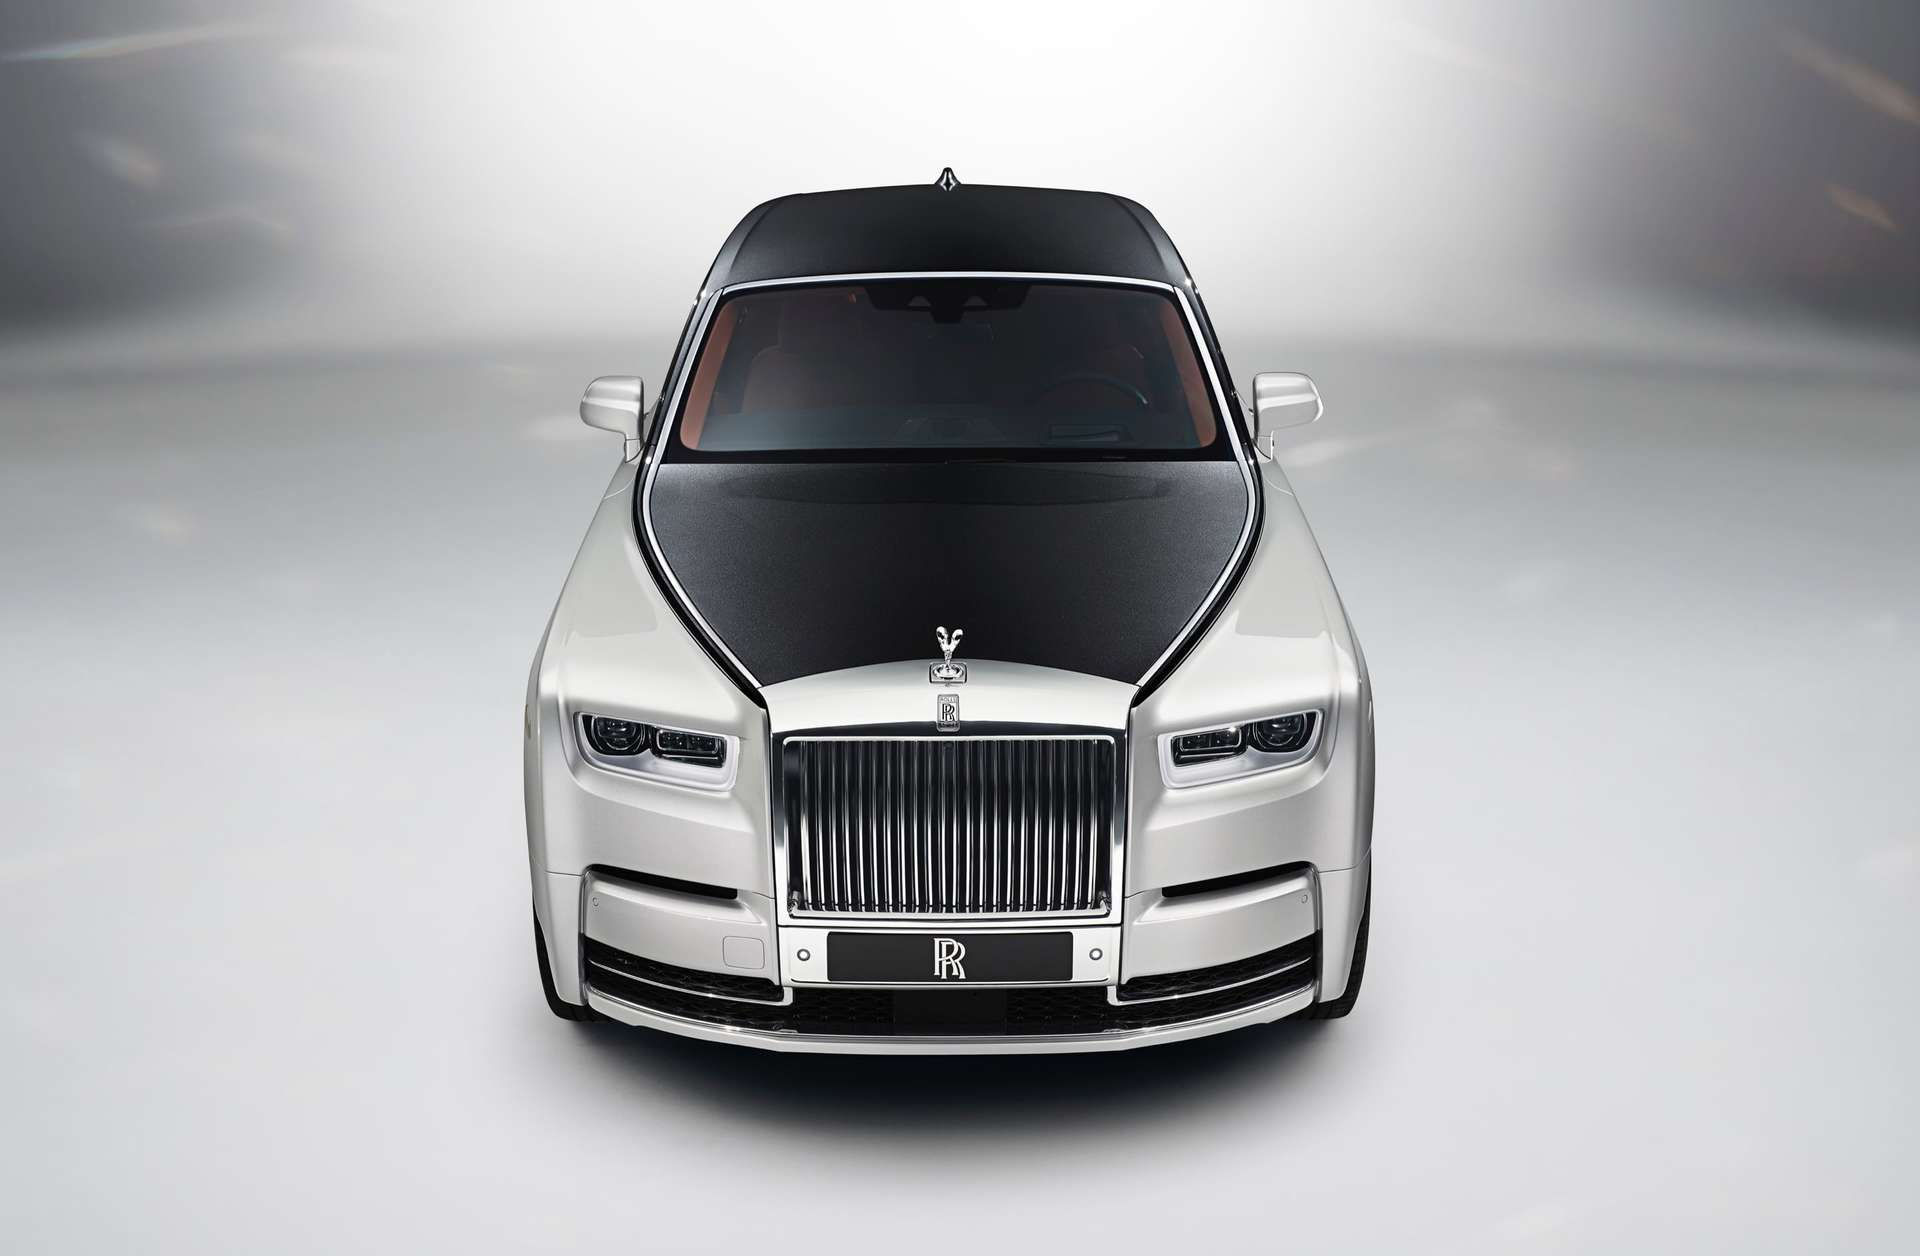 A front on view of a two toned Rolls-Royce Phantom Motor Car